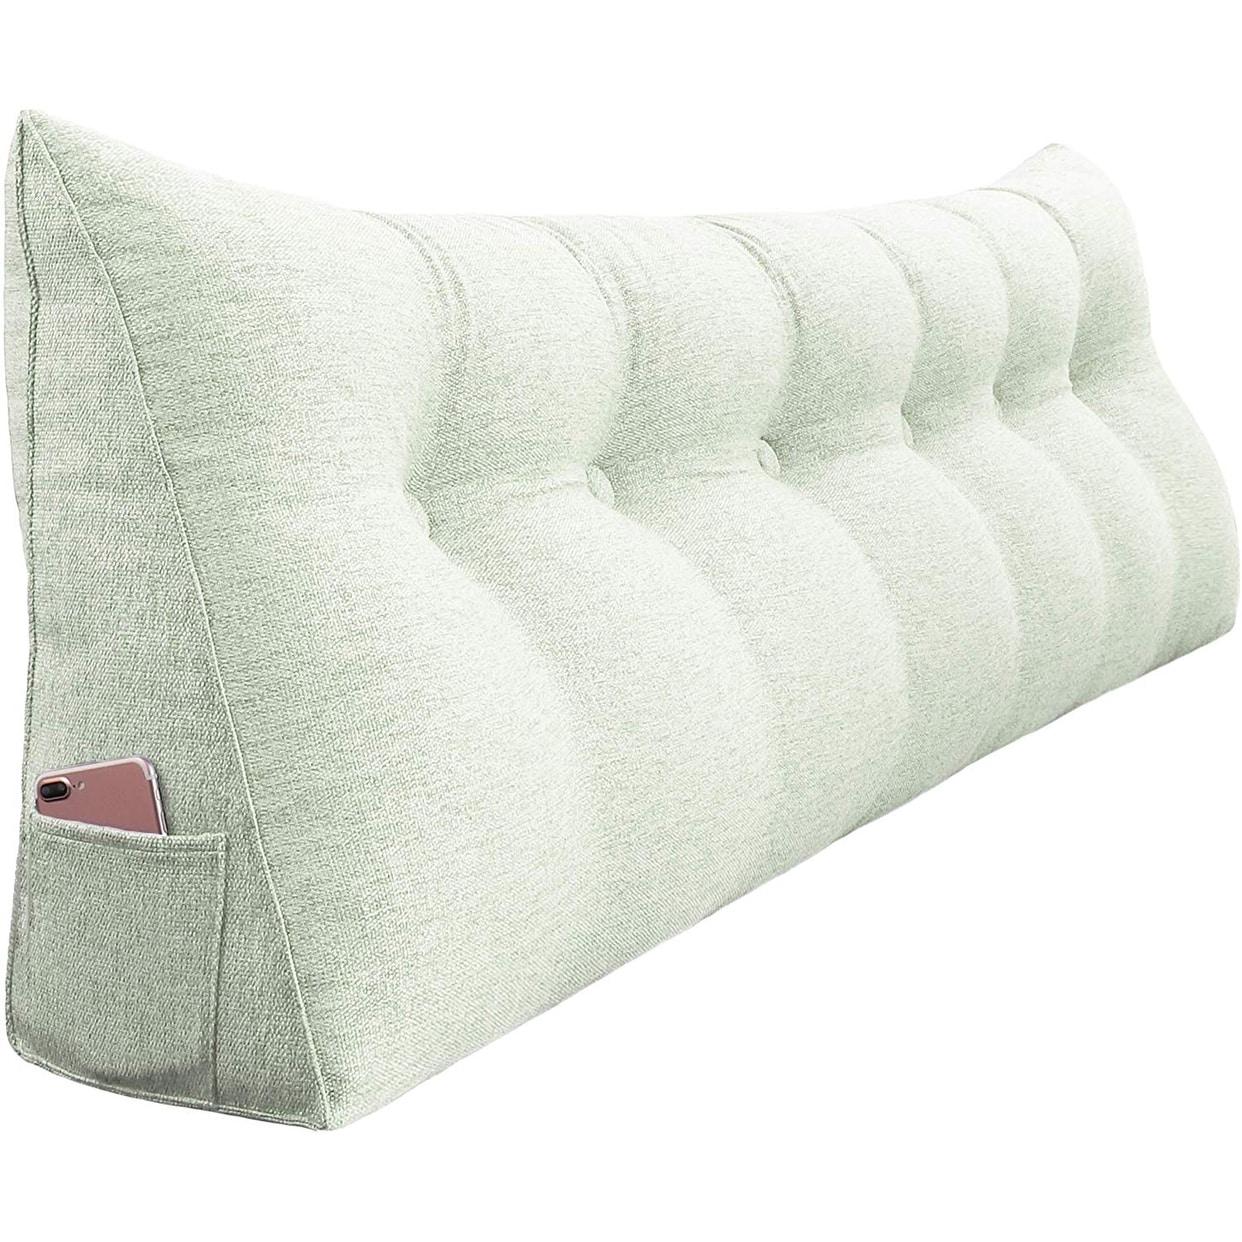 Wowmax Bed Wedge Bolster Pillow Headboard Backrest Daybed Support Off White California King Overstock 30684393